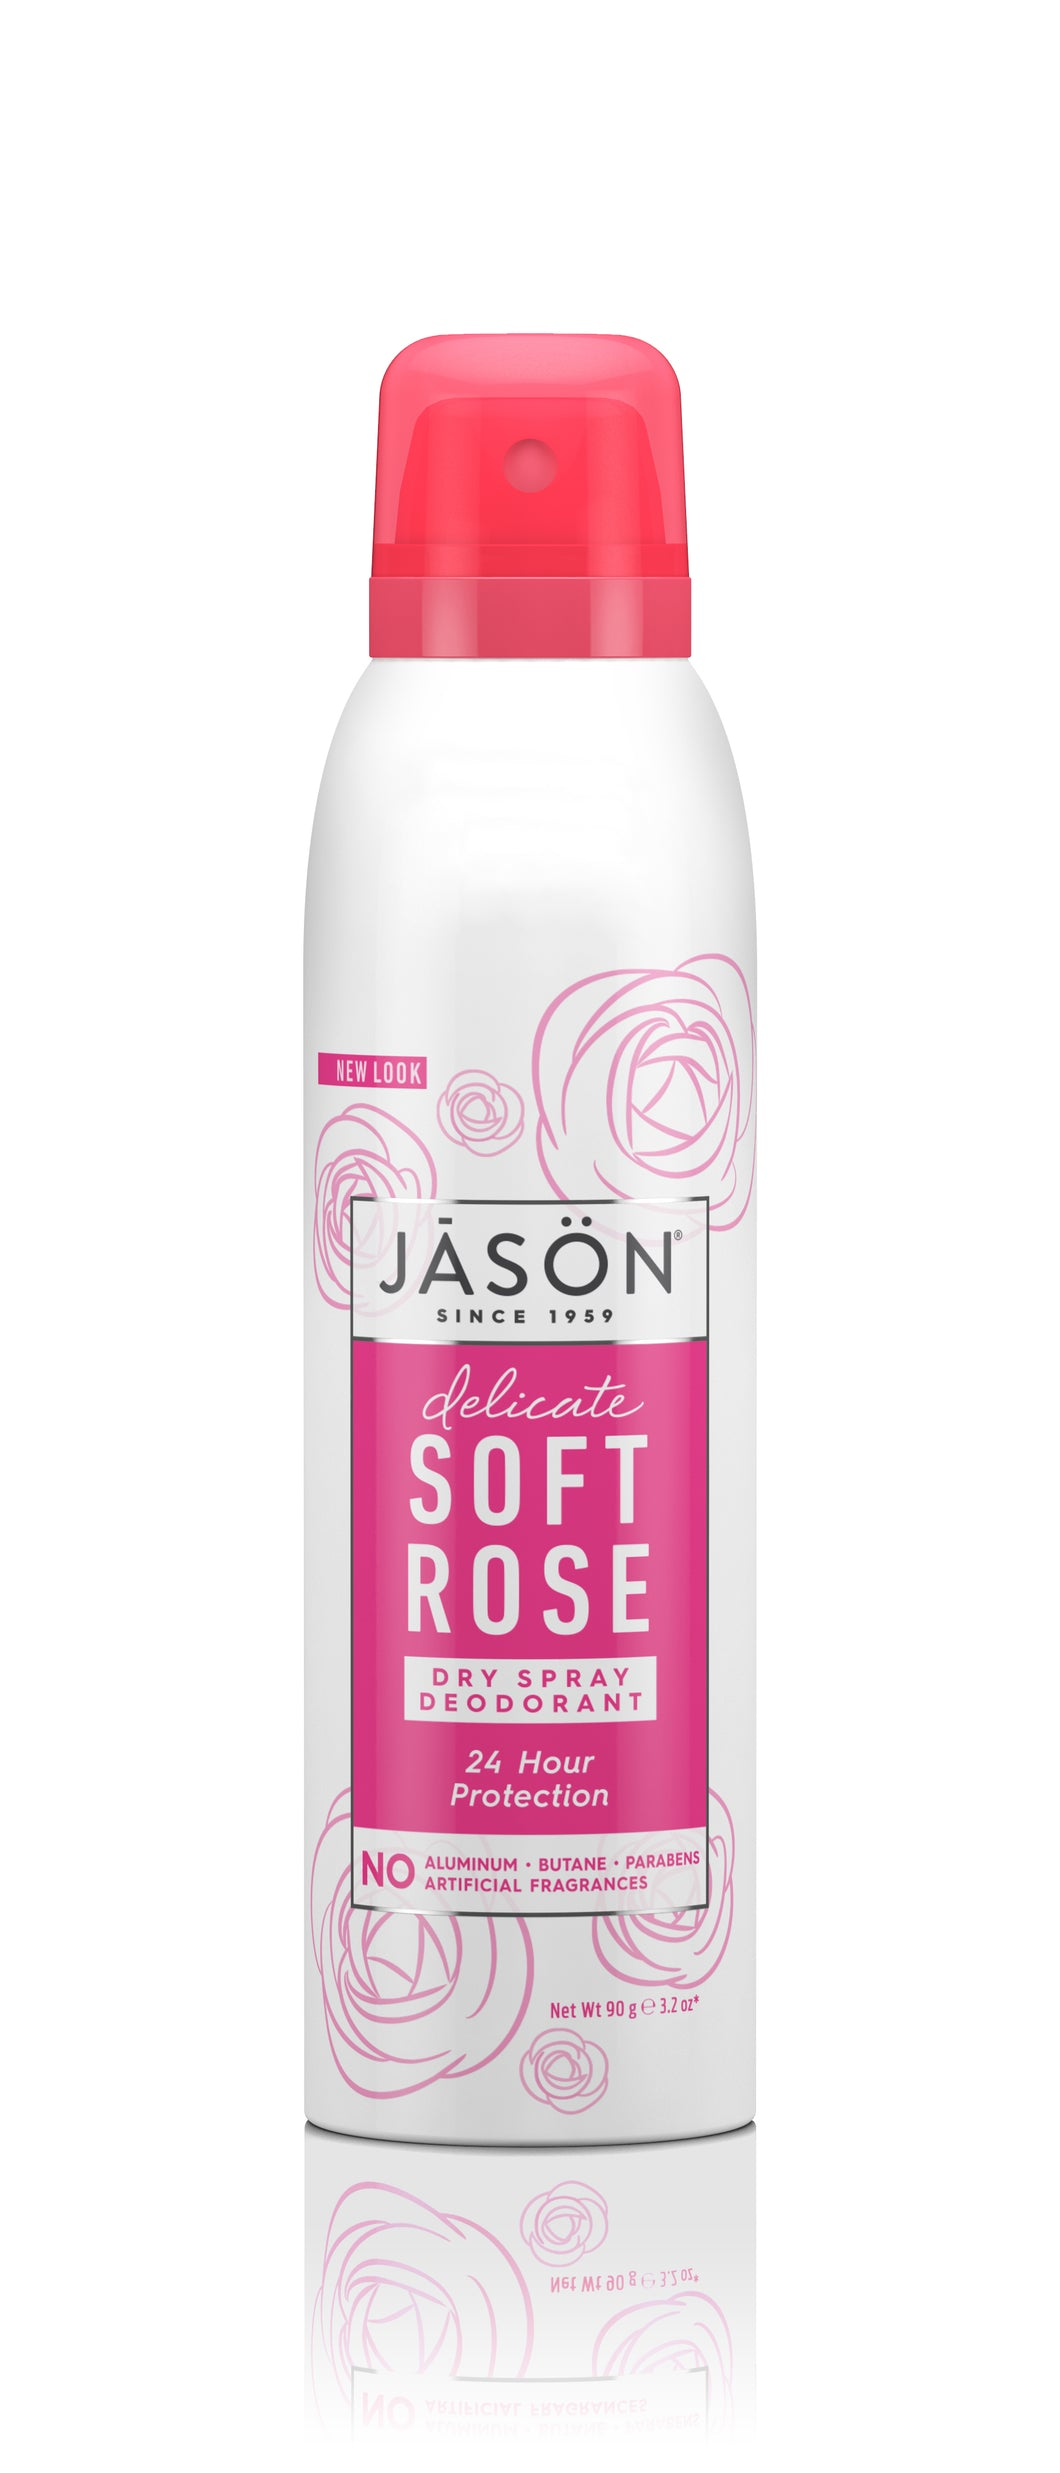 Delicate Soft Rose Dry Spray Deodorant